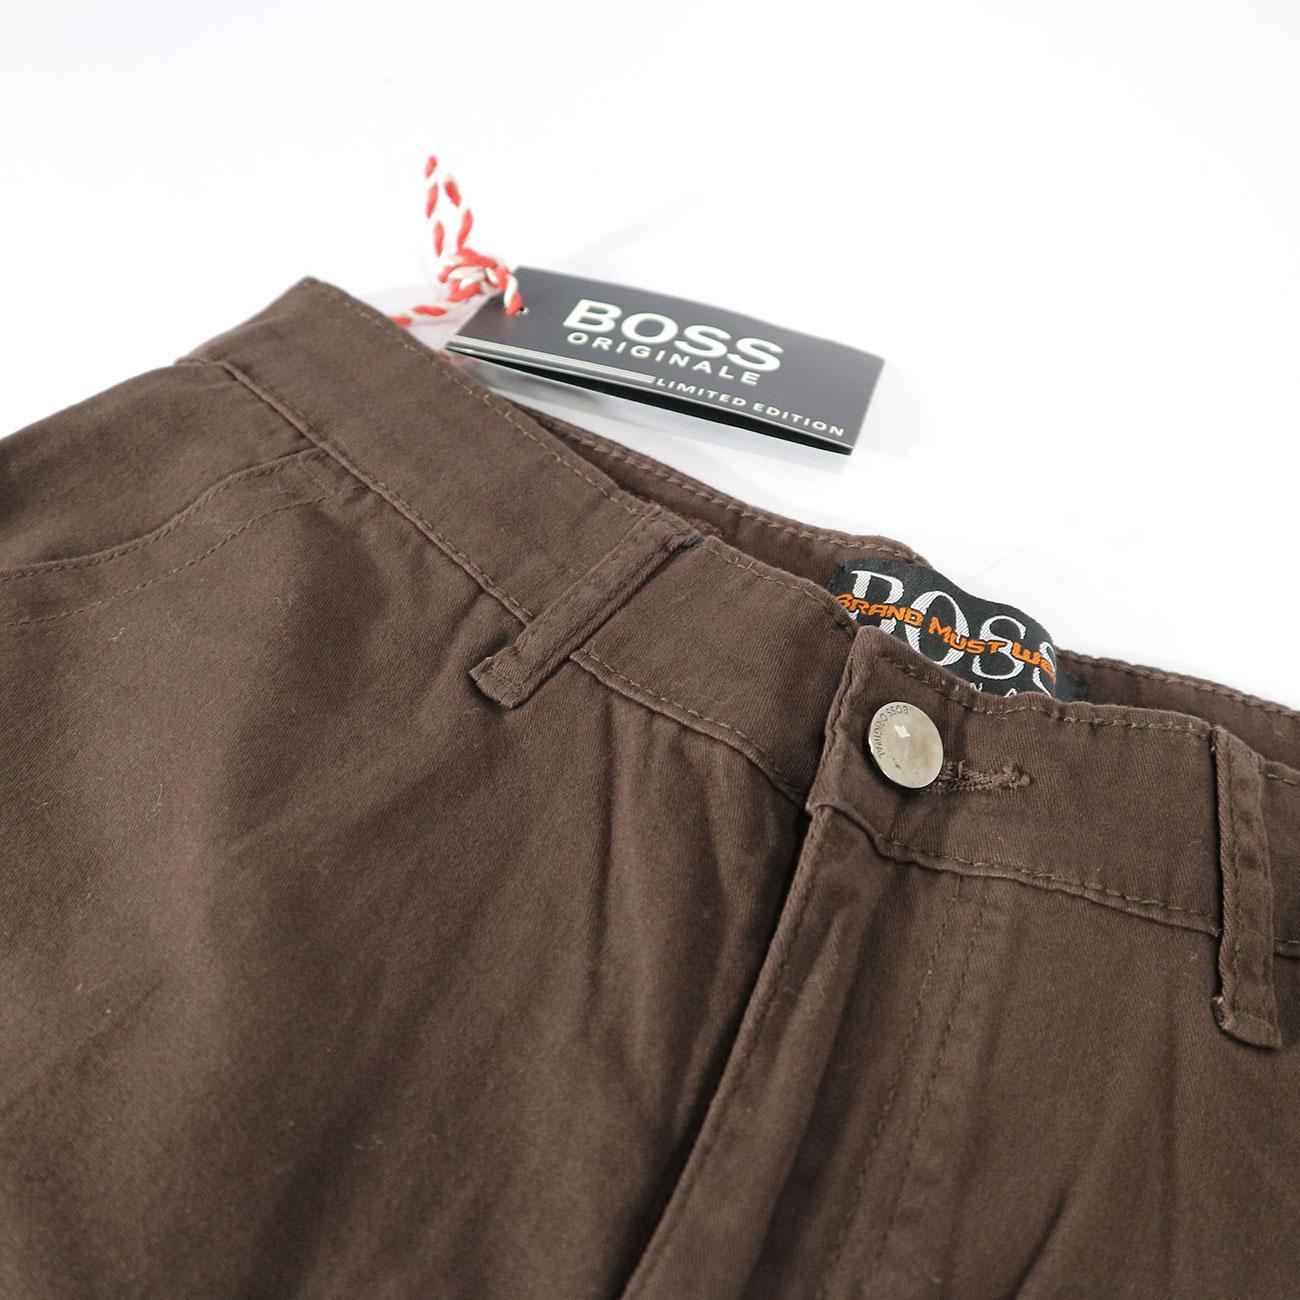 Celana Chinos Boss Original Regular Size 28-39 - Kingkong Jeans